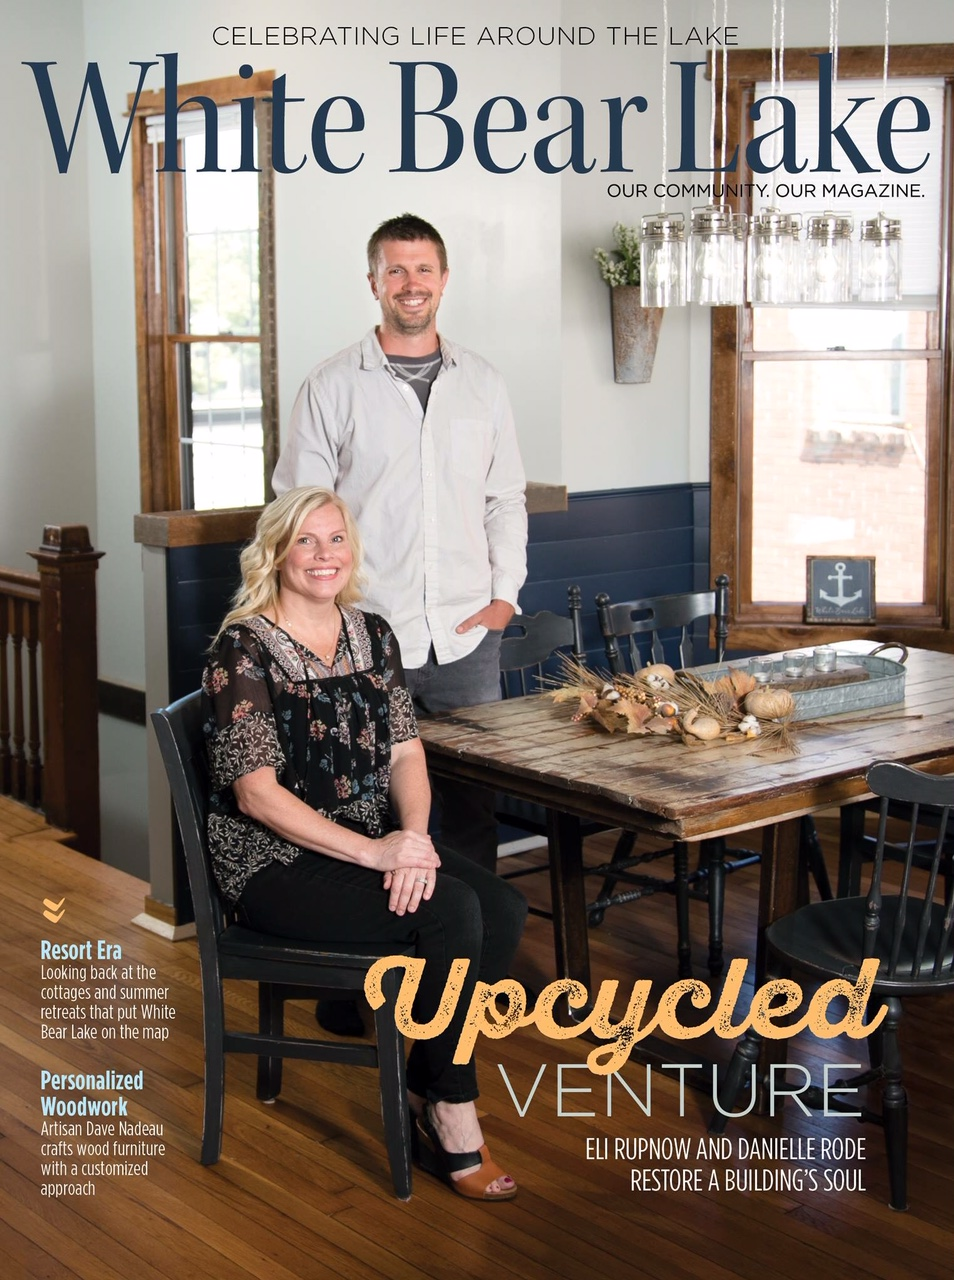 """Upcycled Furniture Store Upsy-Daisy Gets an Upcycled Building"" - September 2018 Issue"